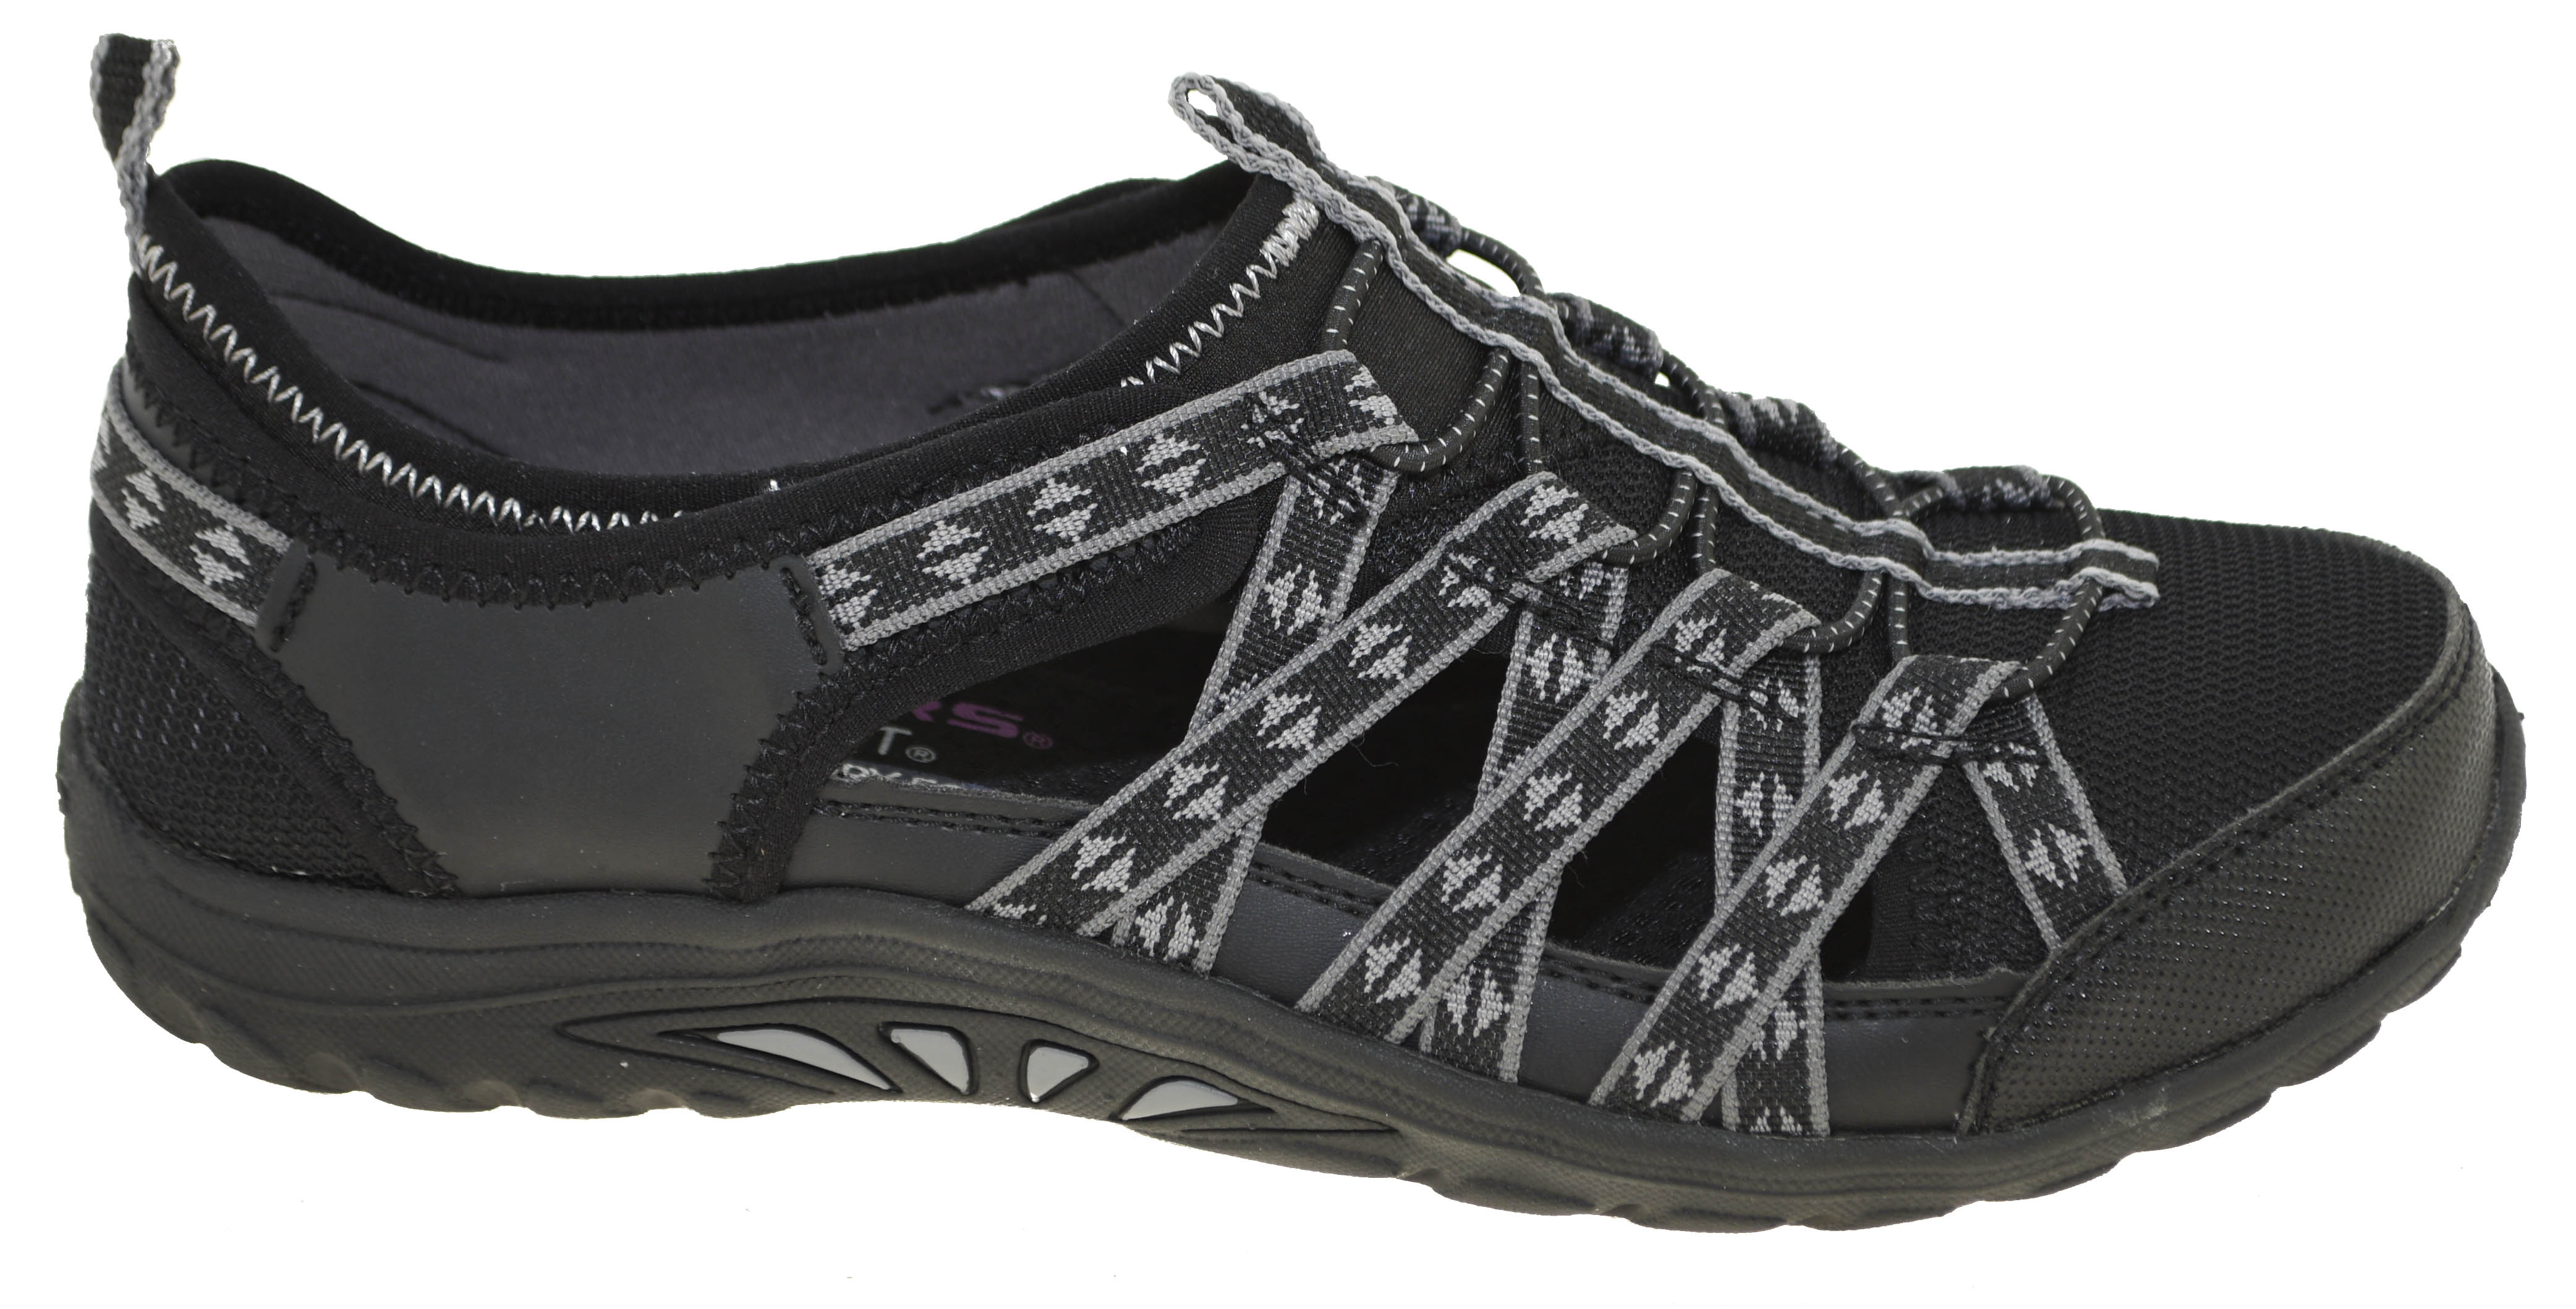 Details about Skechers Women's Reggae Fest Dory Fisherman Sandals Style 49359 BLK